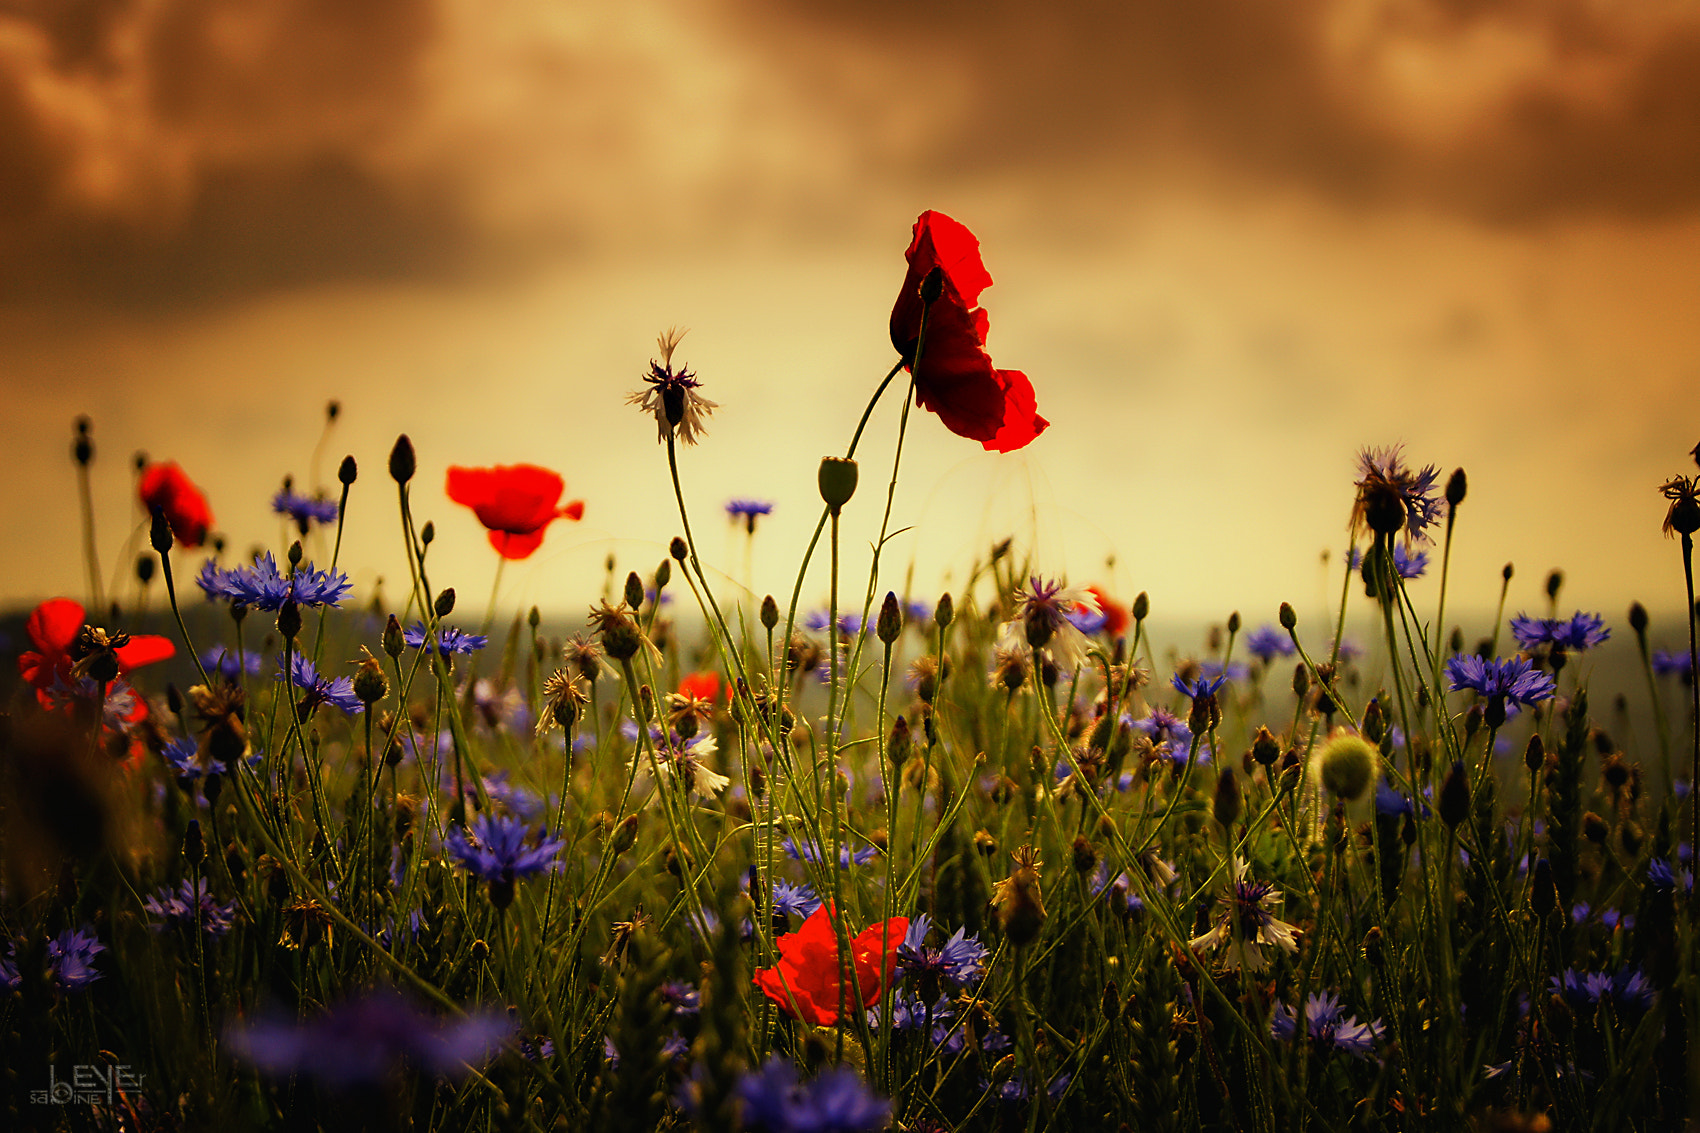 Photograph summertime by Sabine Beyer on 500px